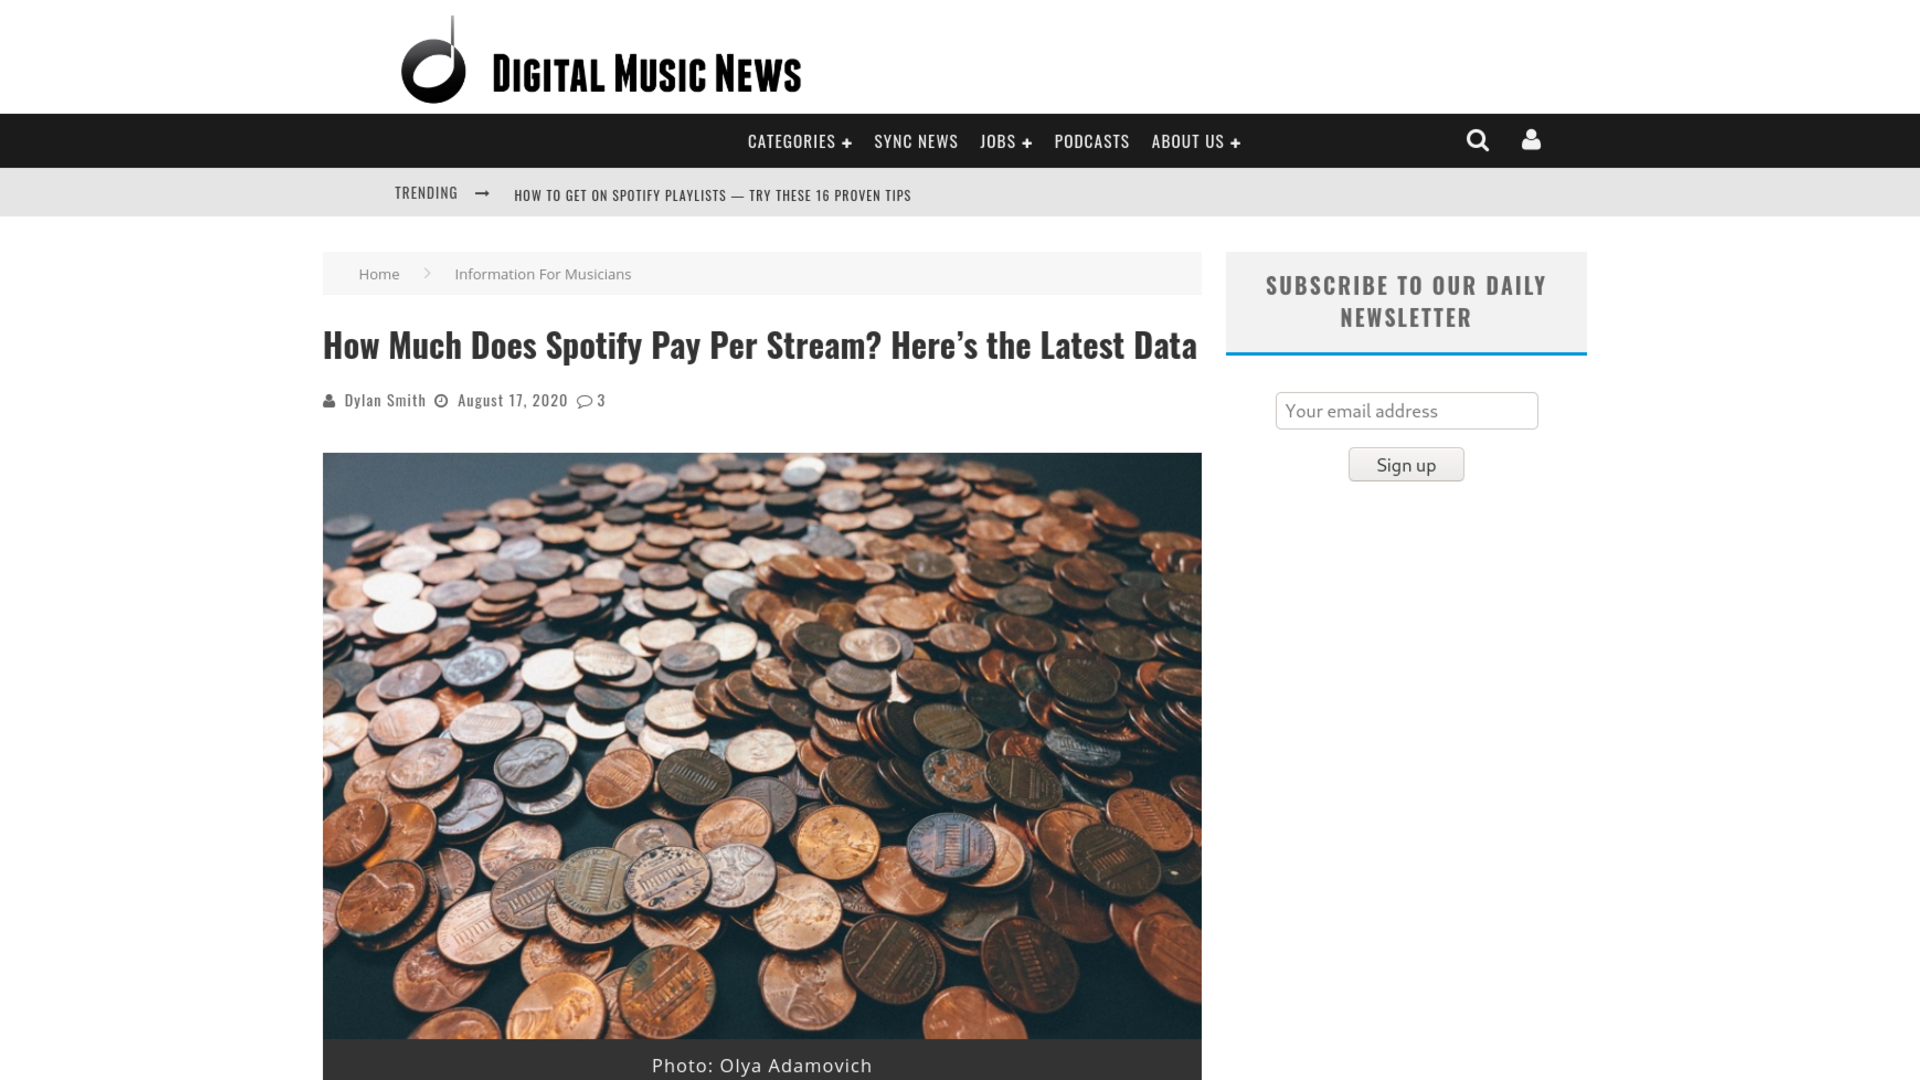 Fairness Rocks News How Much Does Spotify Pay Per Stream? Here's the Latest Data